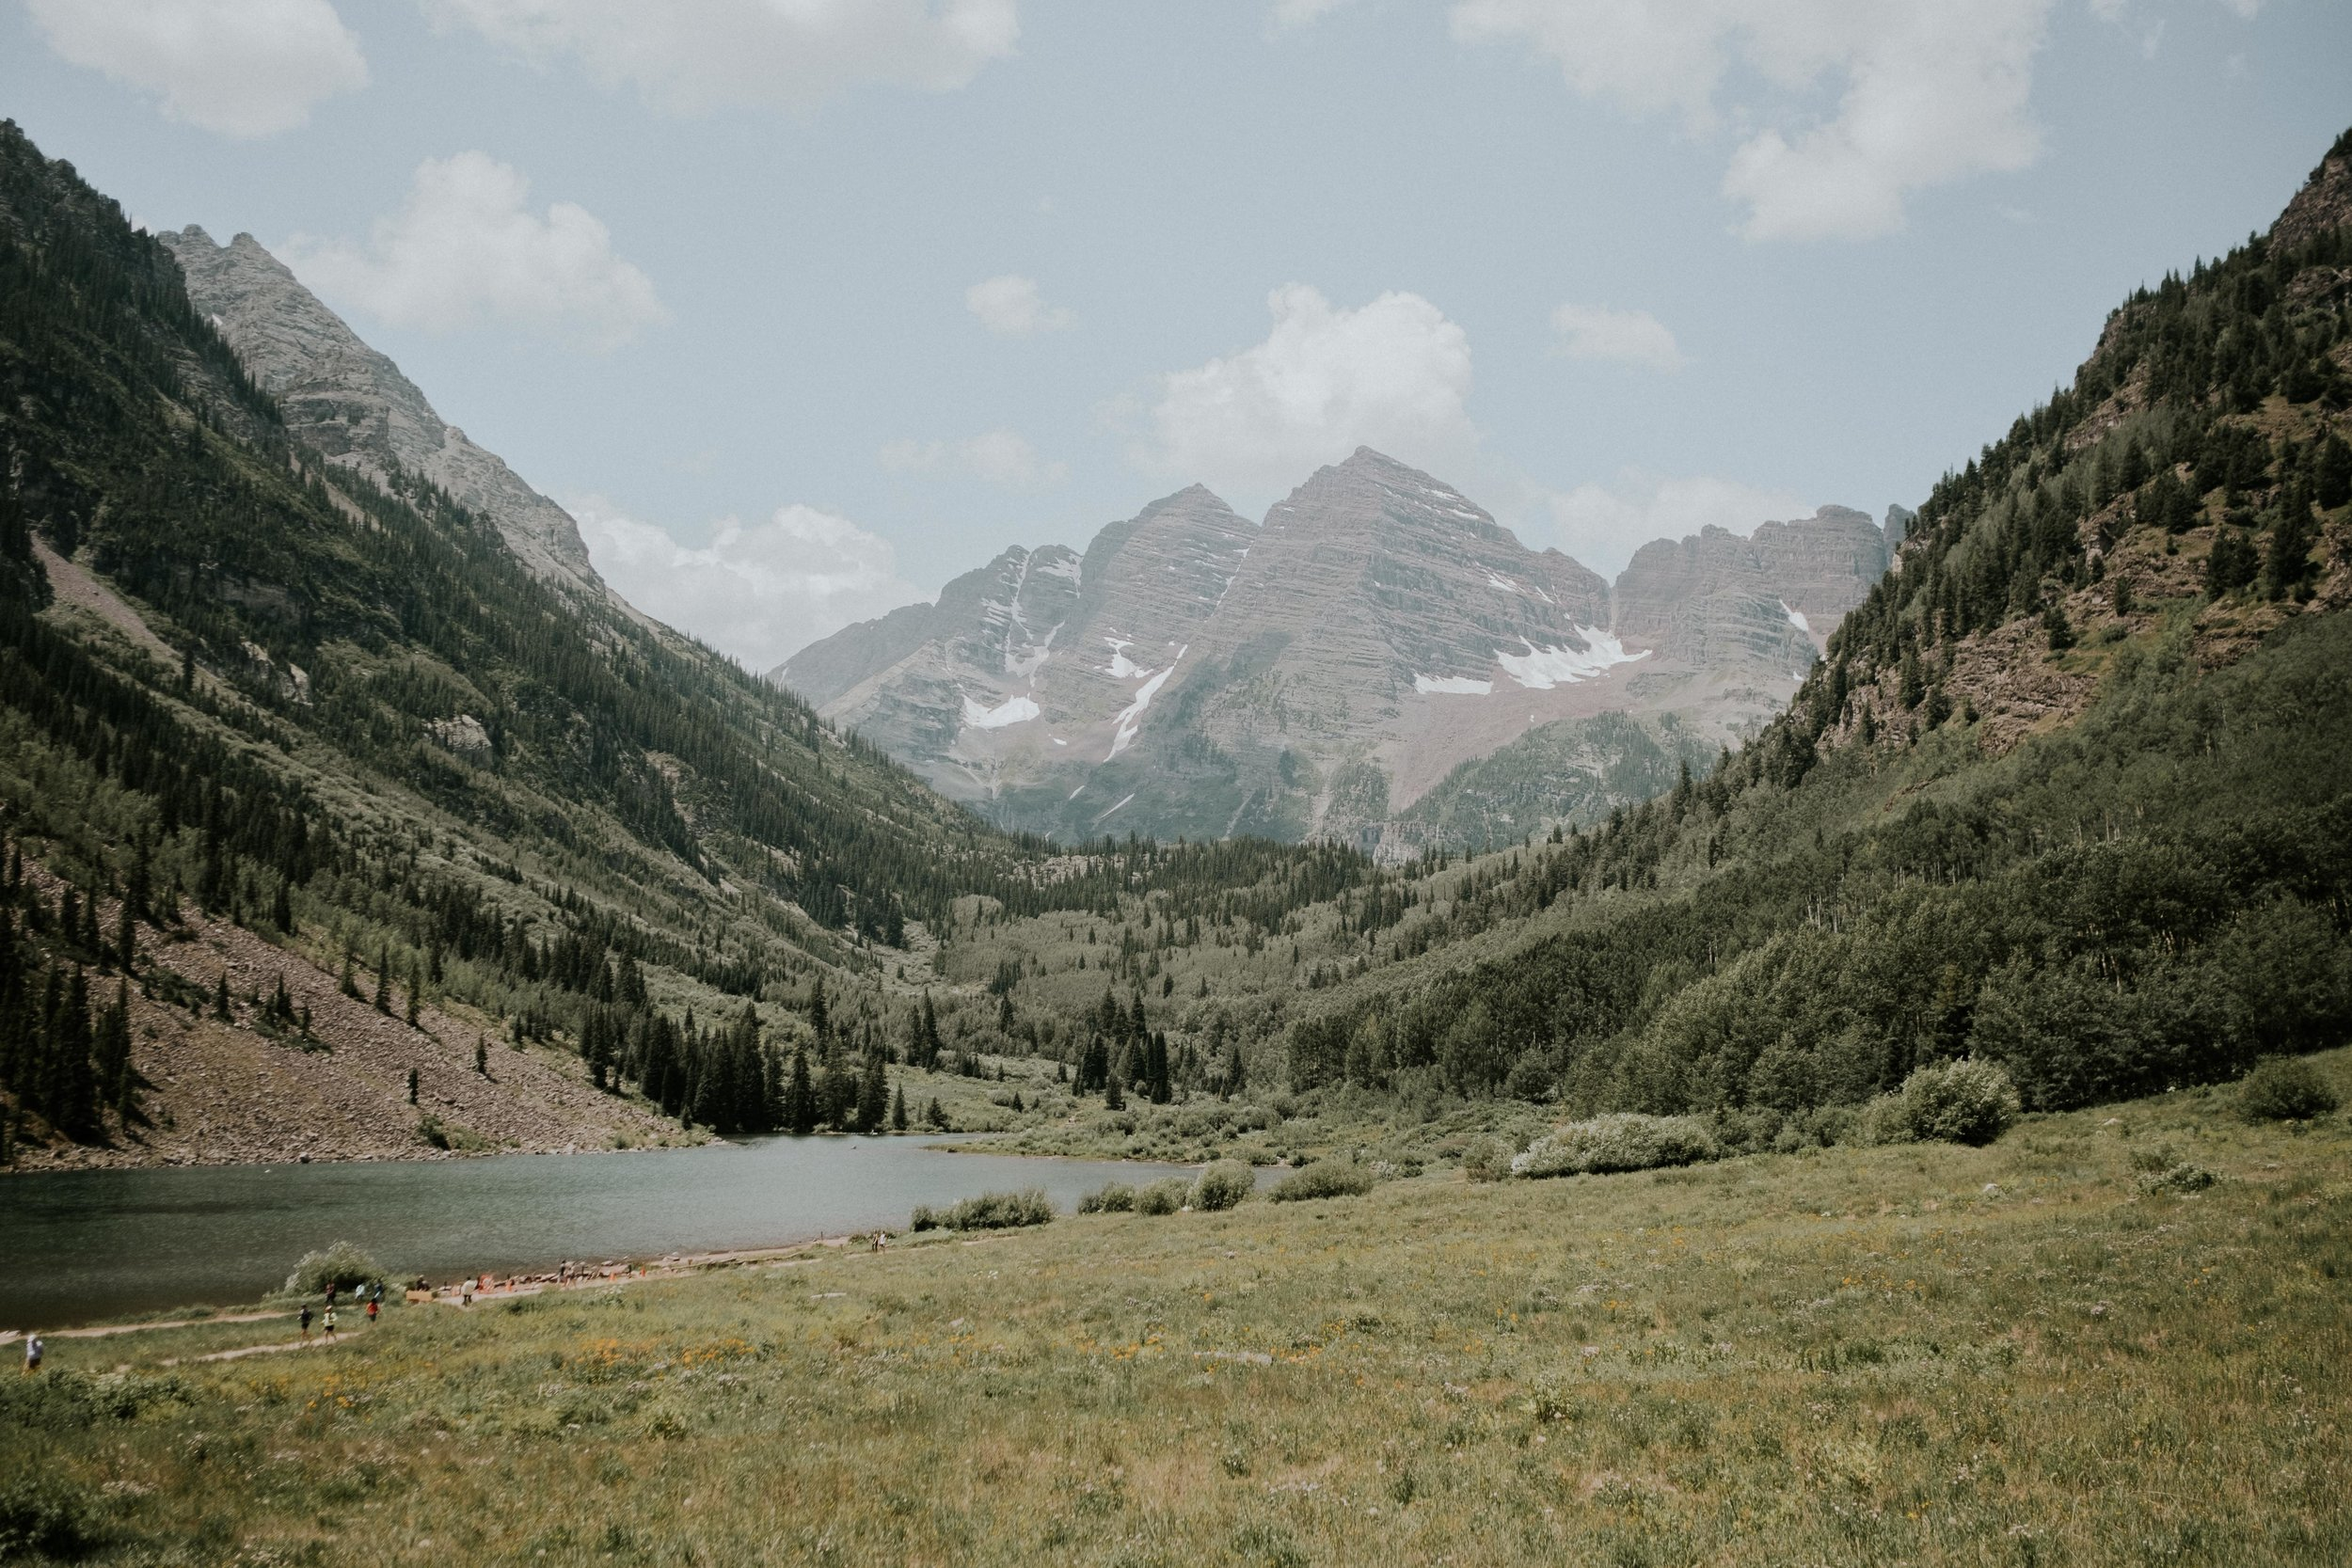 And then the Maroon Bells near Aspen proceeded to steal my heart....